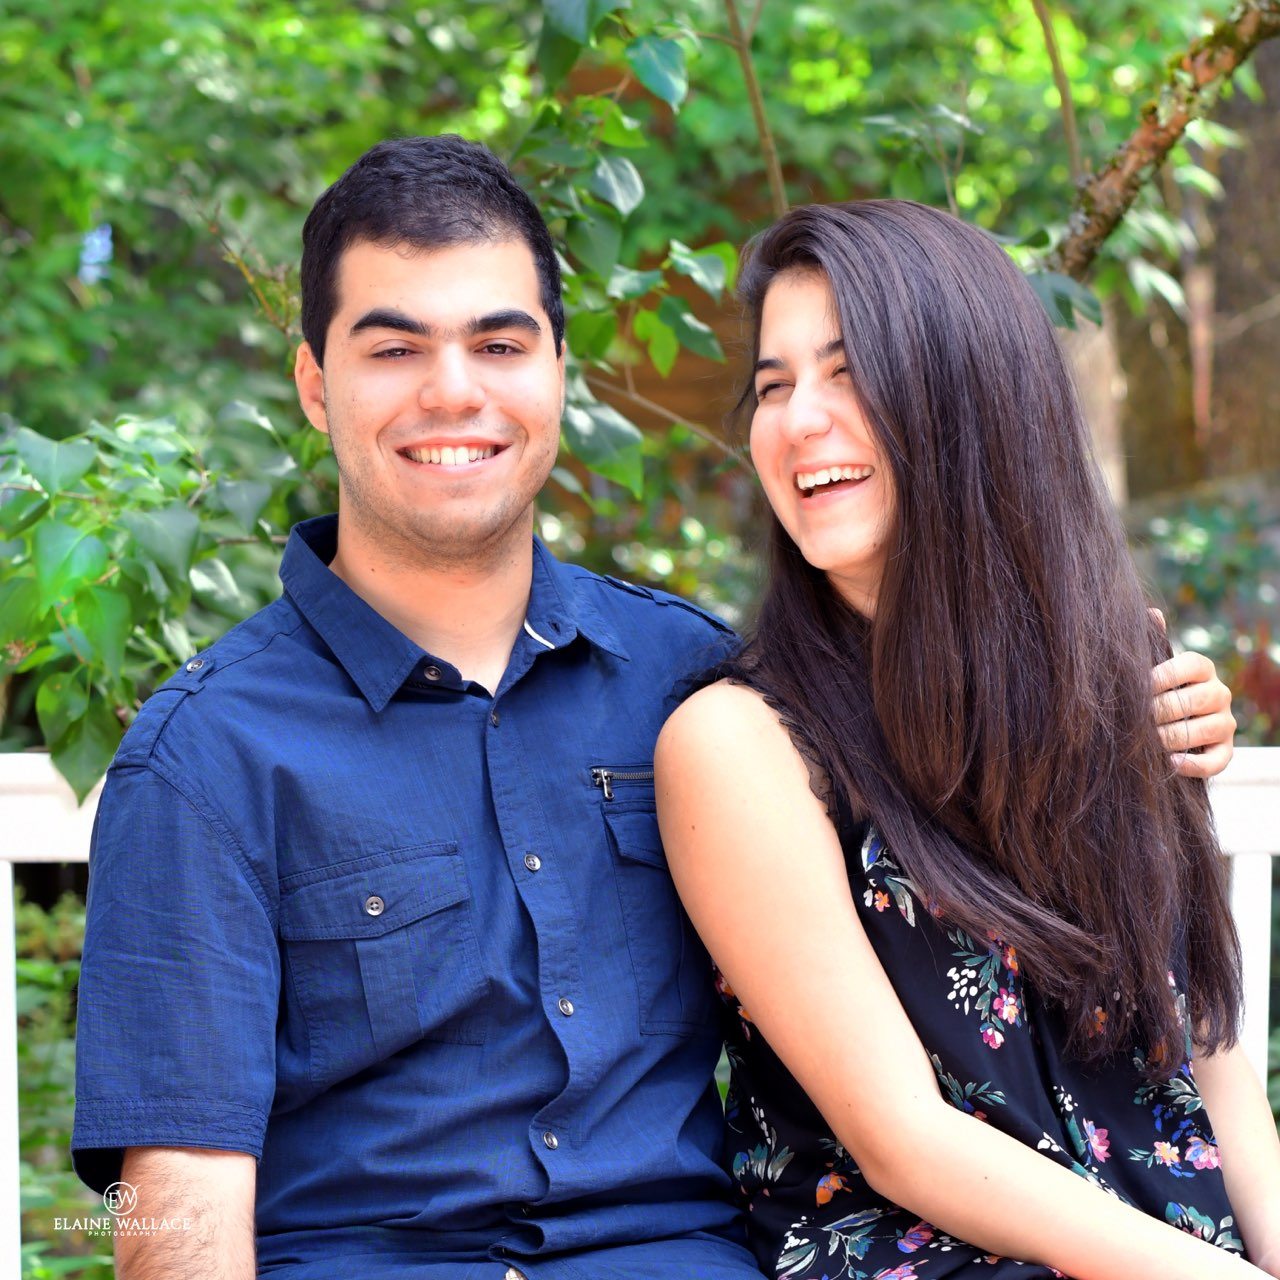 Brandon and Jillian Morani laugh together during their senior photos.